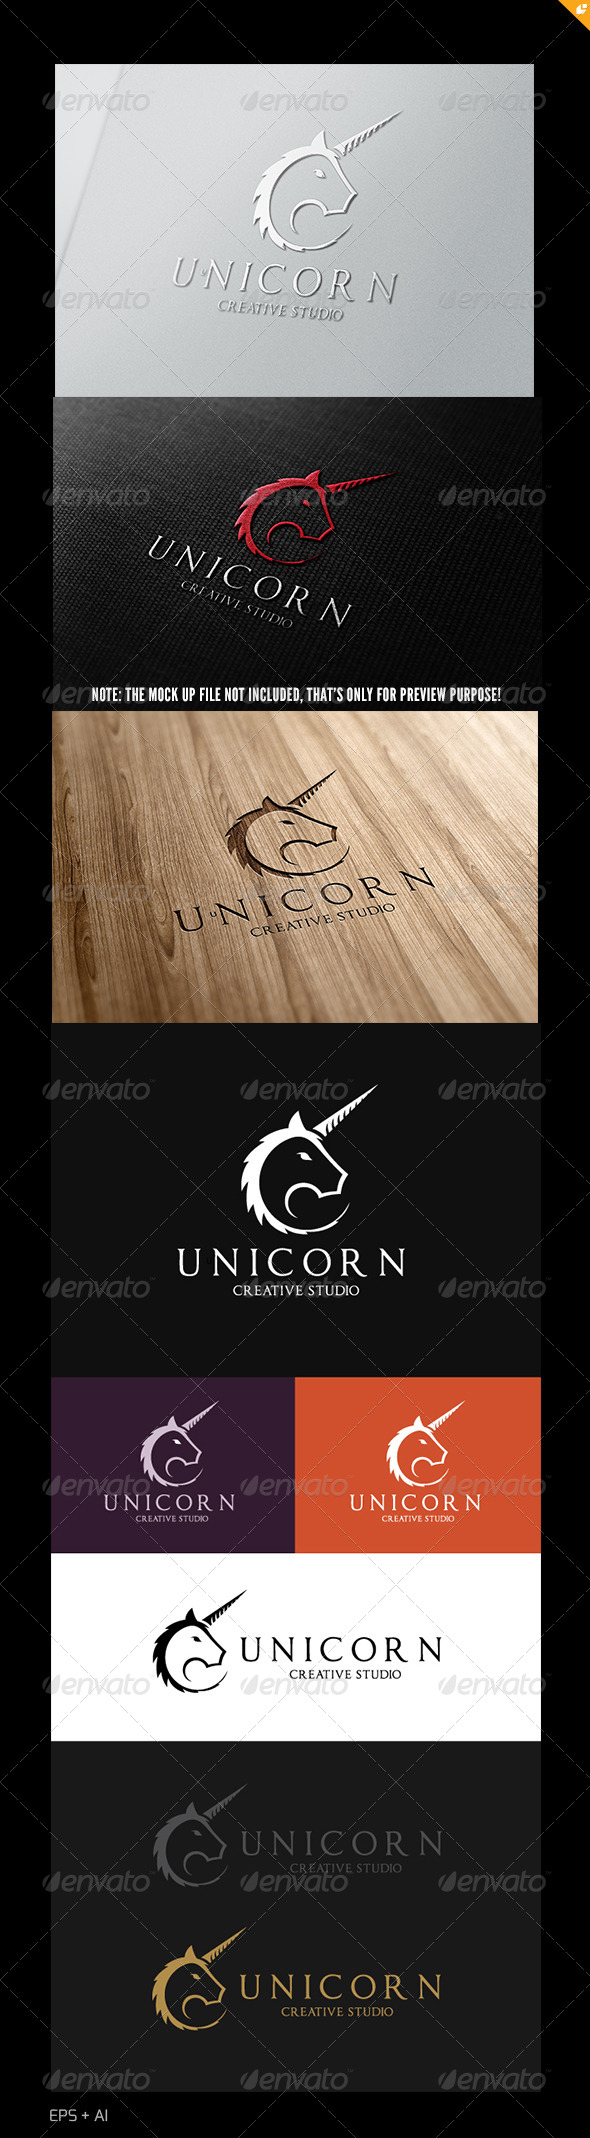 GraphicRiver Unicorn Creative Studio Logo 4920850